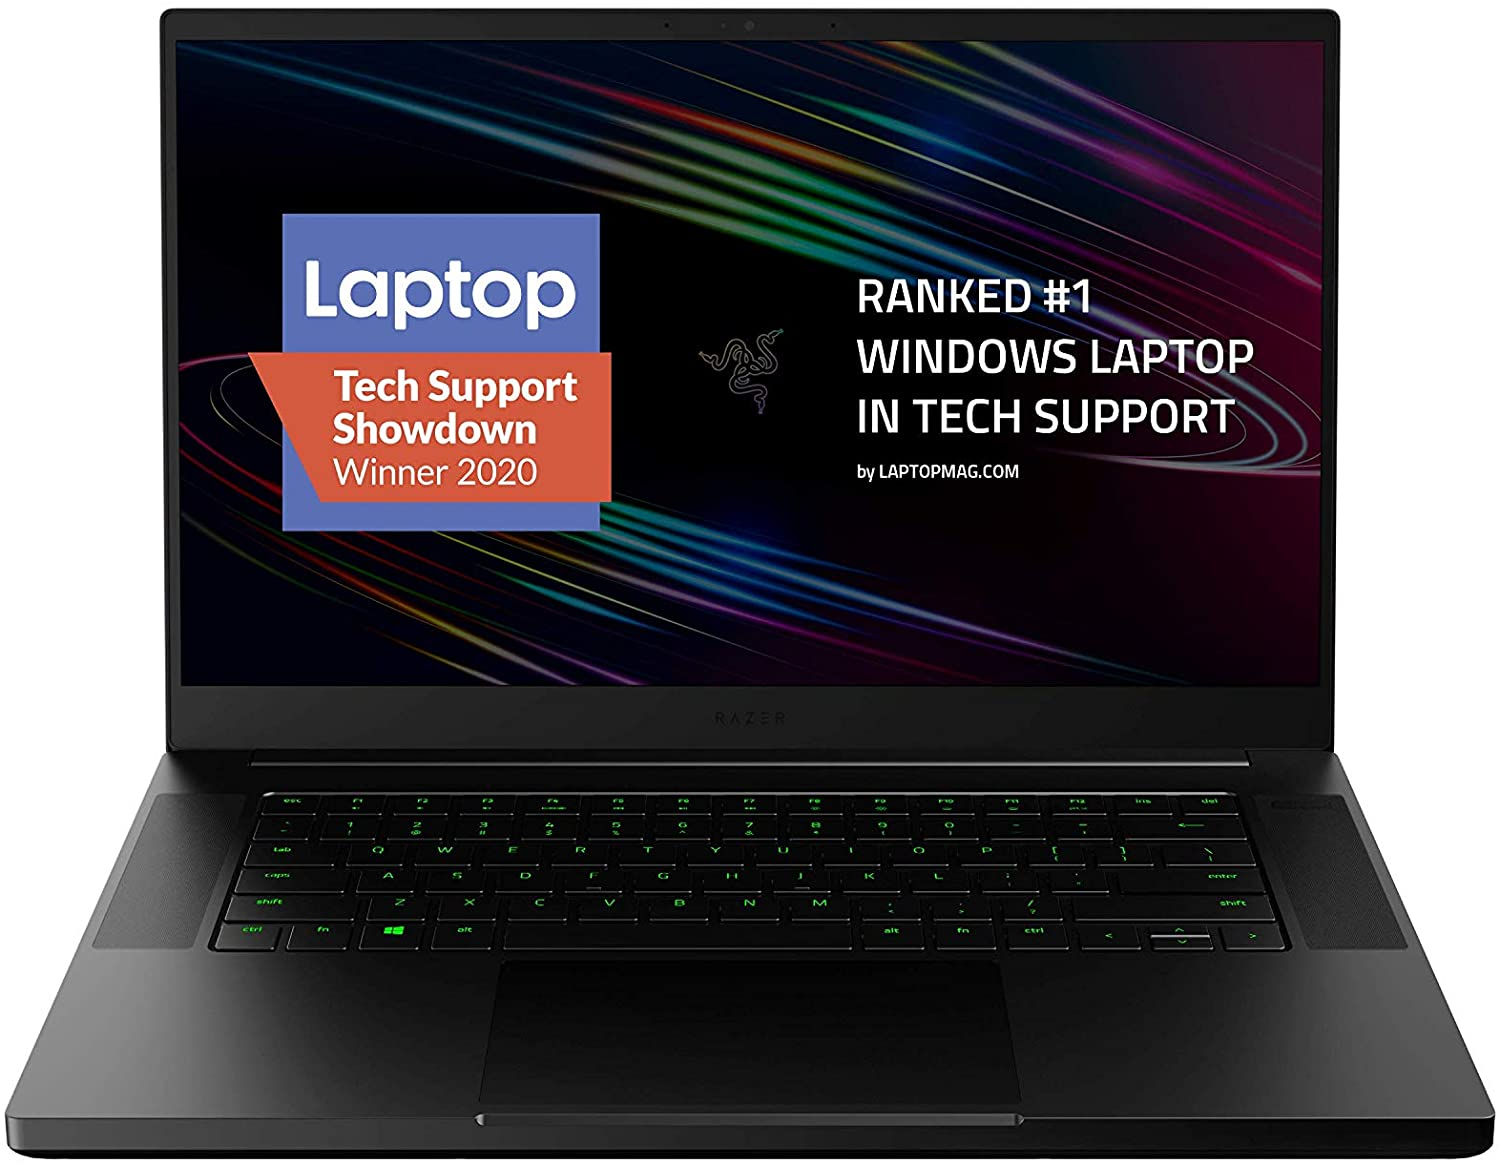 Amazon Com Razer Blade 15 Base Gaming Laptop 2020 Intel Core I7 10750h 6 Core Nvidia Geforce Rtx 2060 15 6 Fhd 1080p 144hz 16gb Ram 512gb Ssd Cnc Aluminum Chroma Rgb Lighting Thunderbolt 3 Black